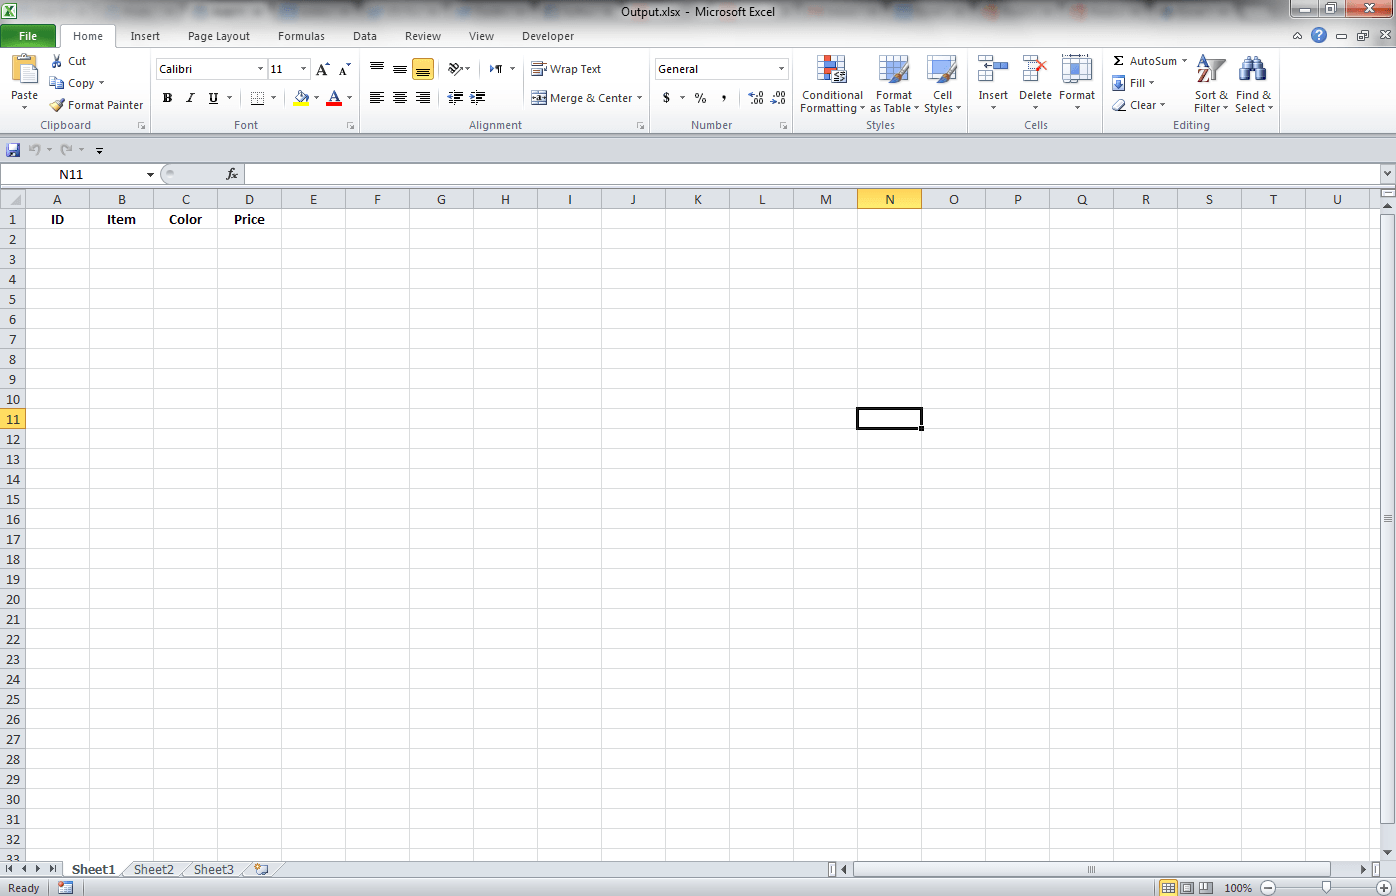 Excel output File